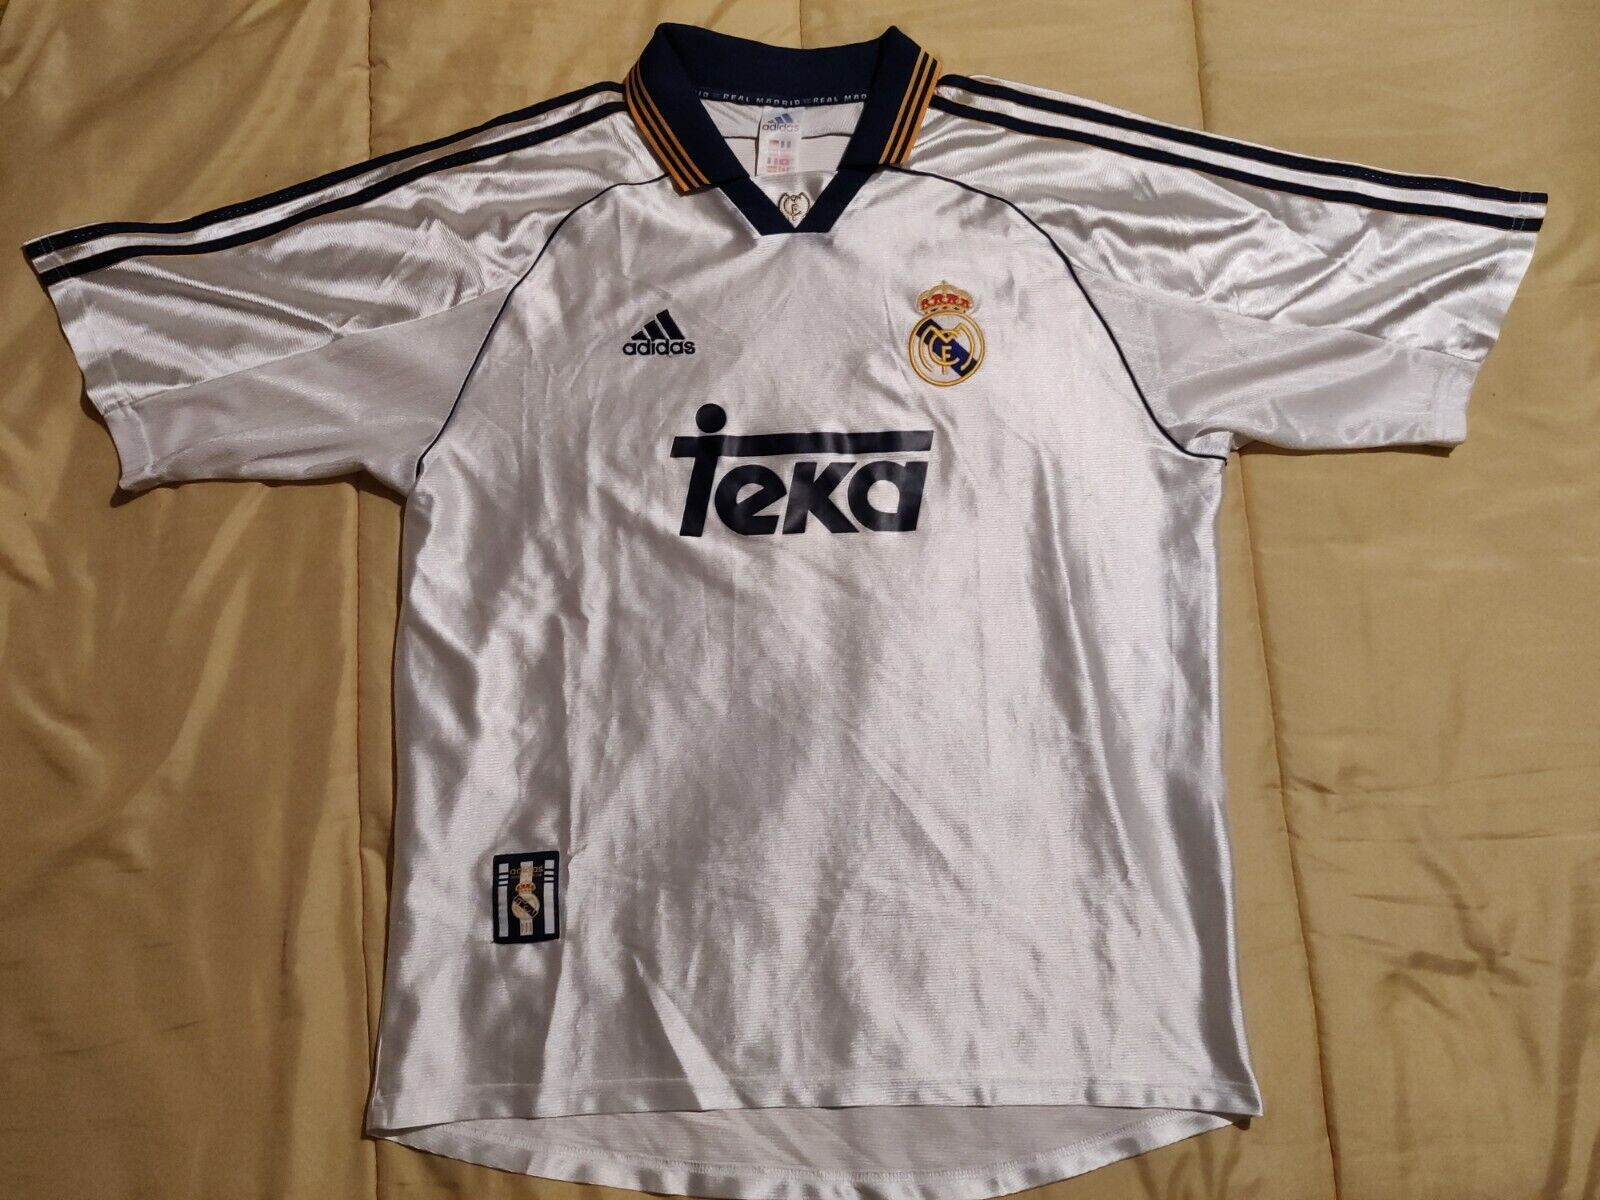 910 Real Madrid UCL Champions 1999 2000 Adidas Shirt Jersey Vintage Spain